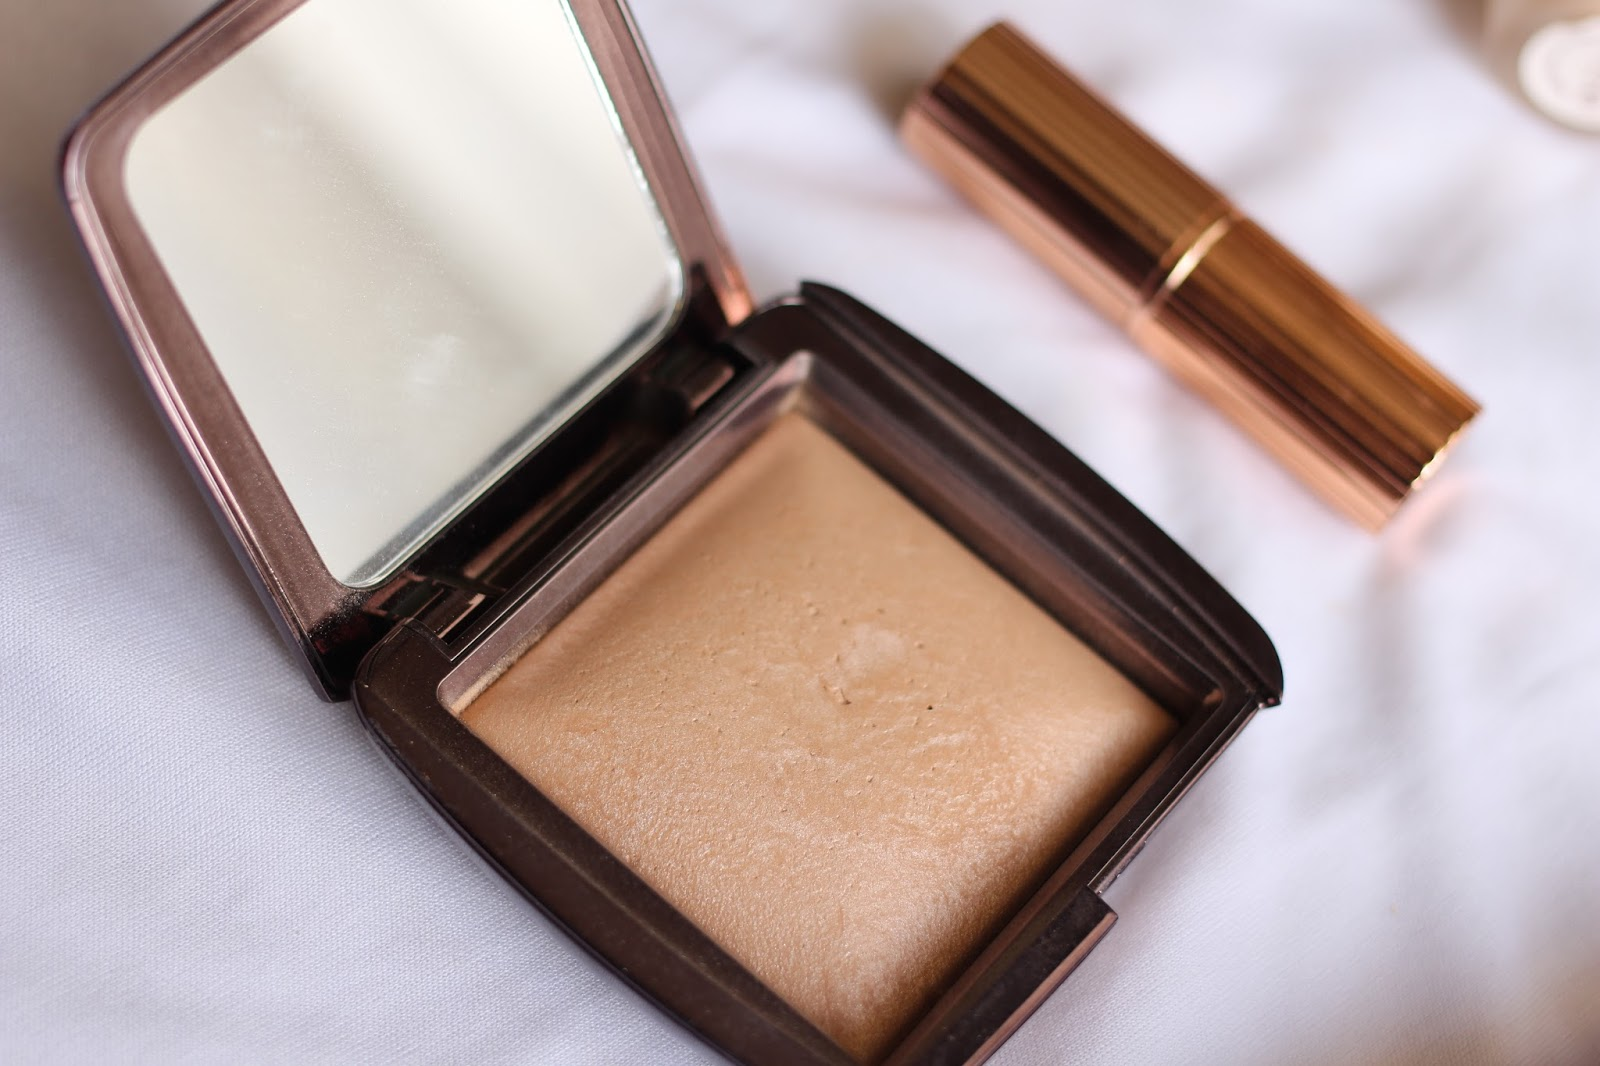 Hourglass Ambient Lighting Luminous